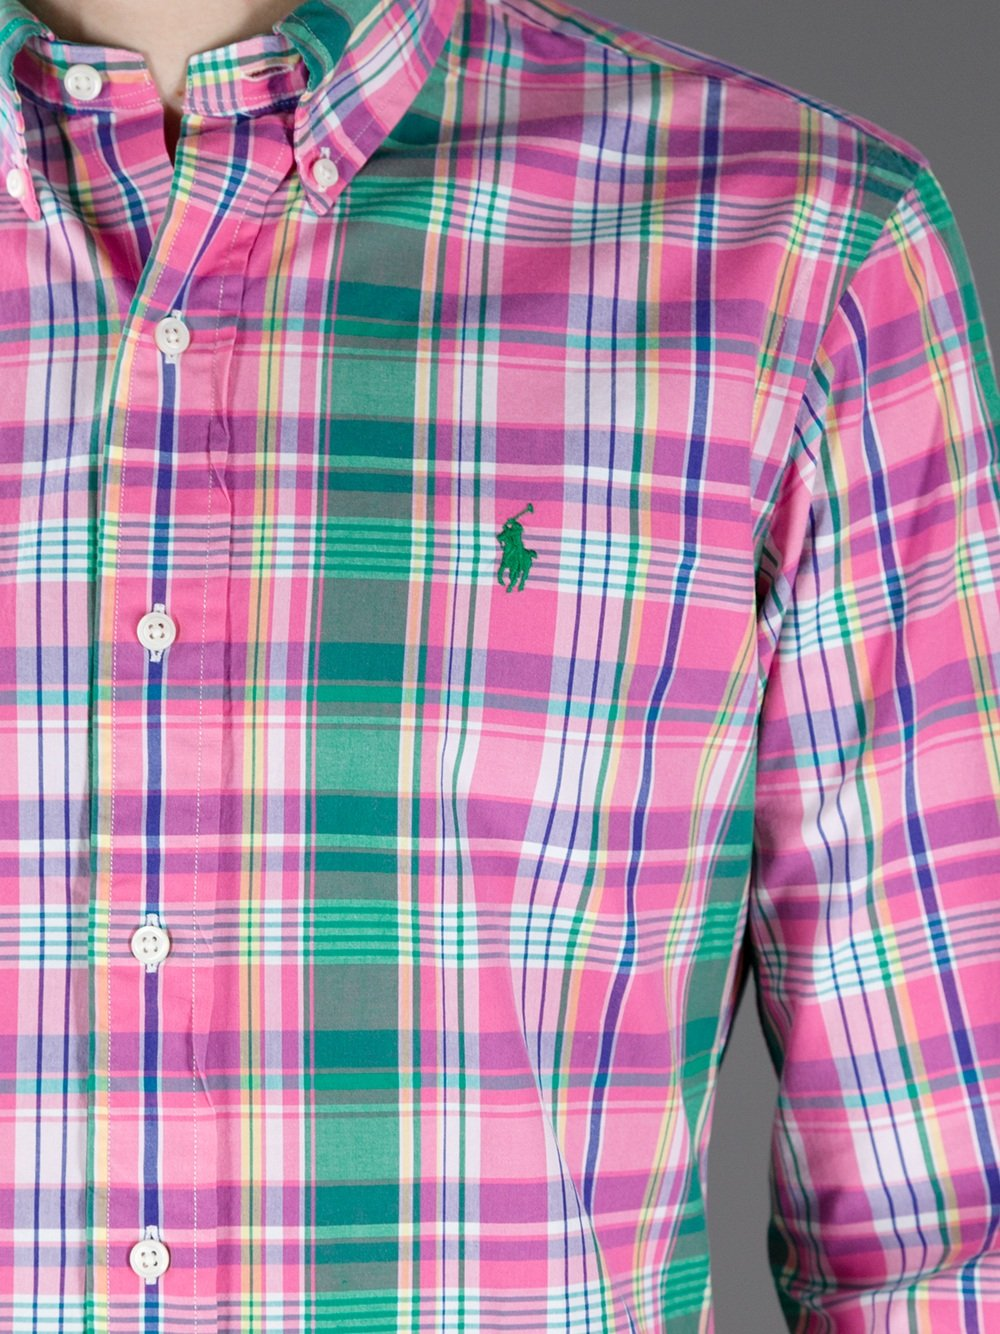 lyst polo ralph lauren plaid shirt in pink for men. Black Bedroom Furniture Sets. Home Design Ideas